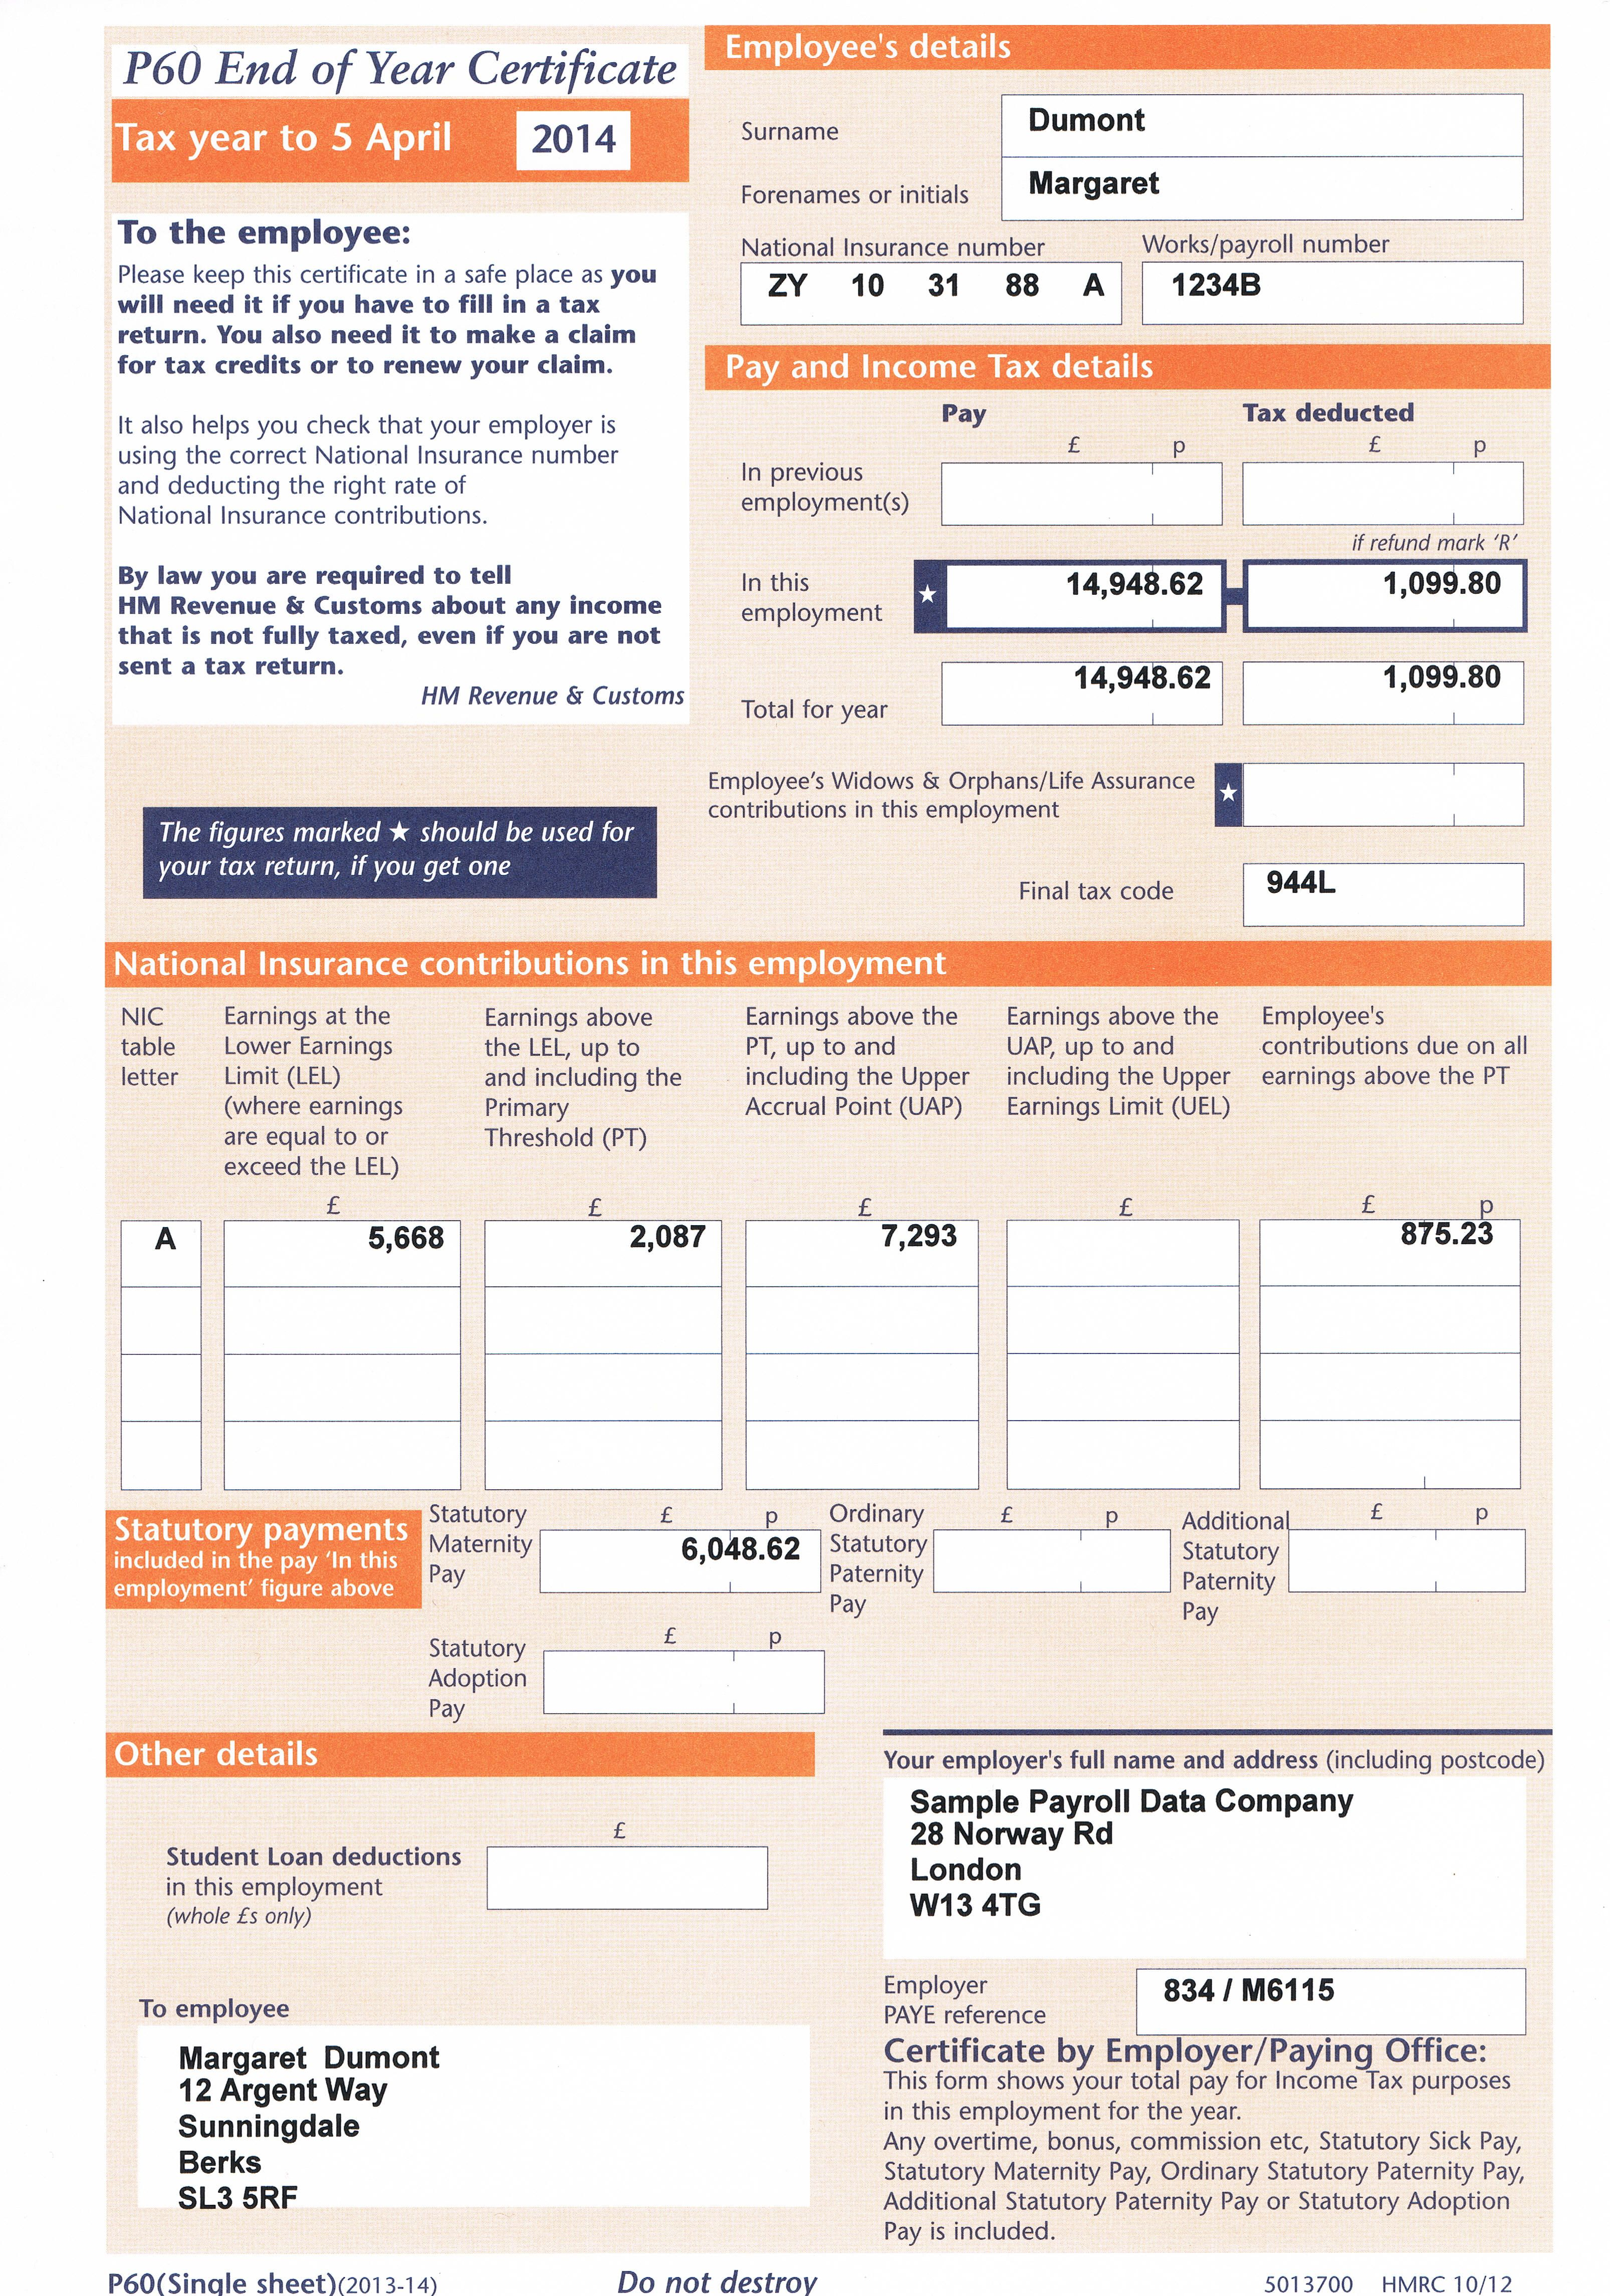 Order your lost and damage payslips online from